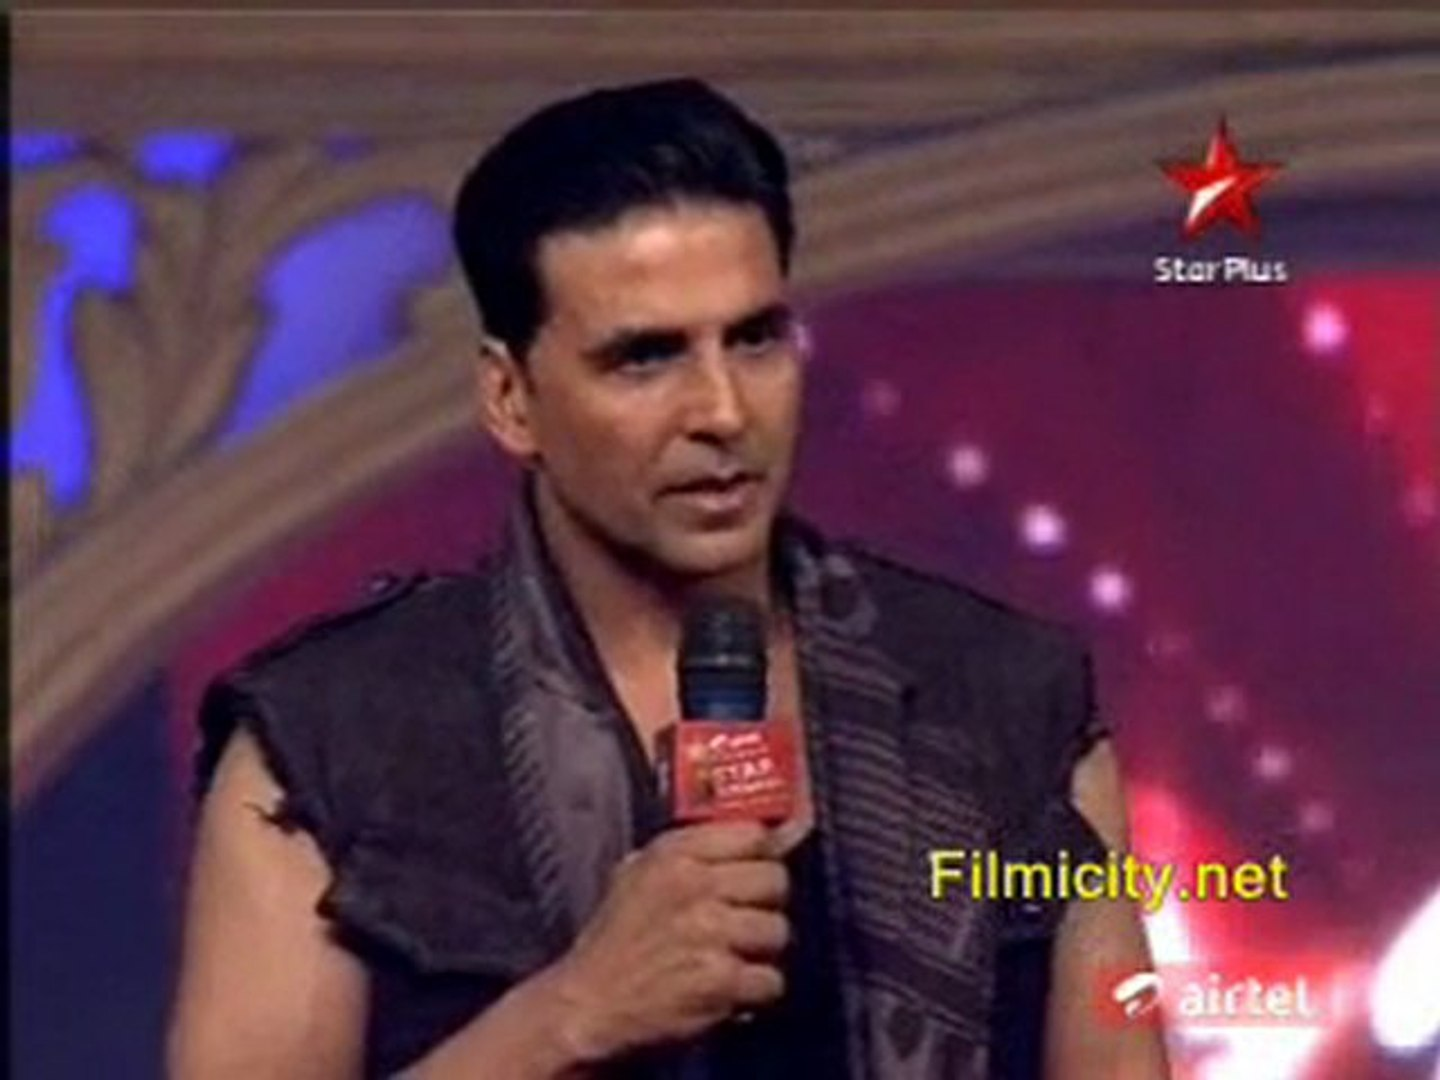 Airtel Super Star Awards 2011 - 27th November 2011 Video Watch - pt4